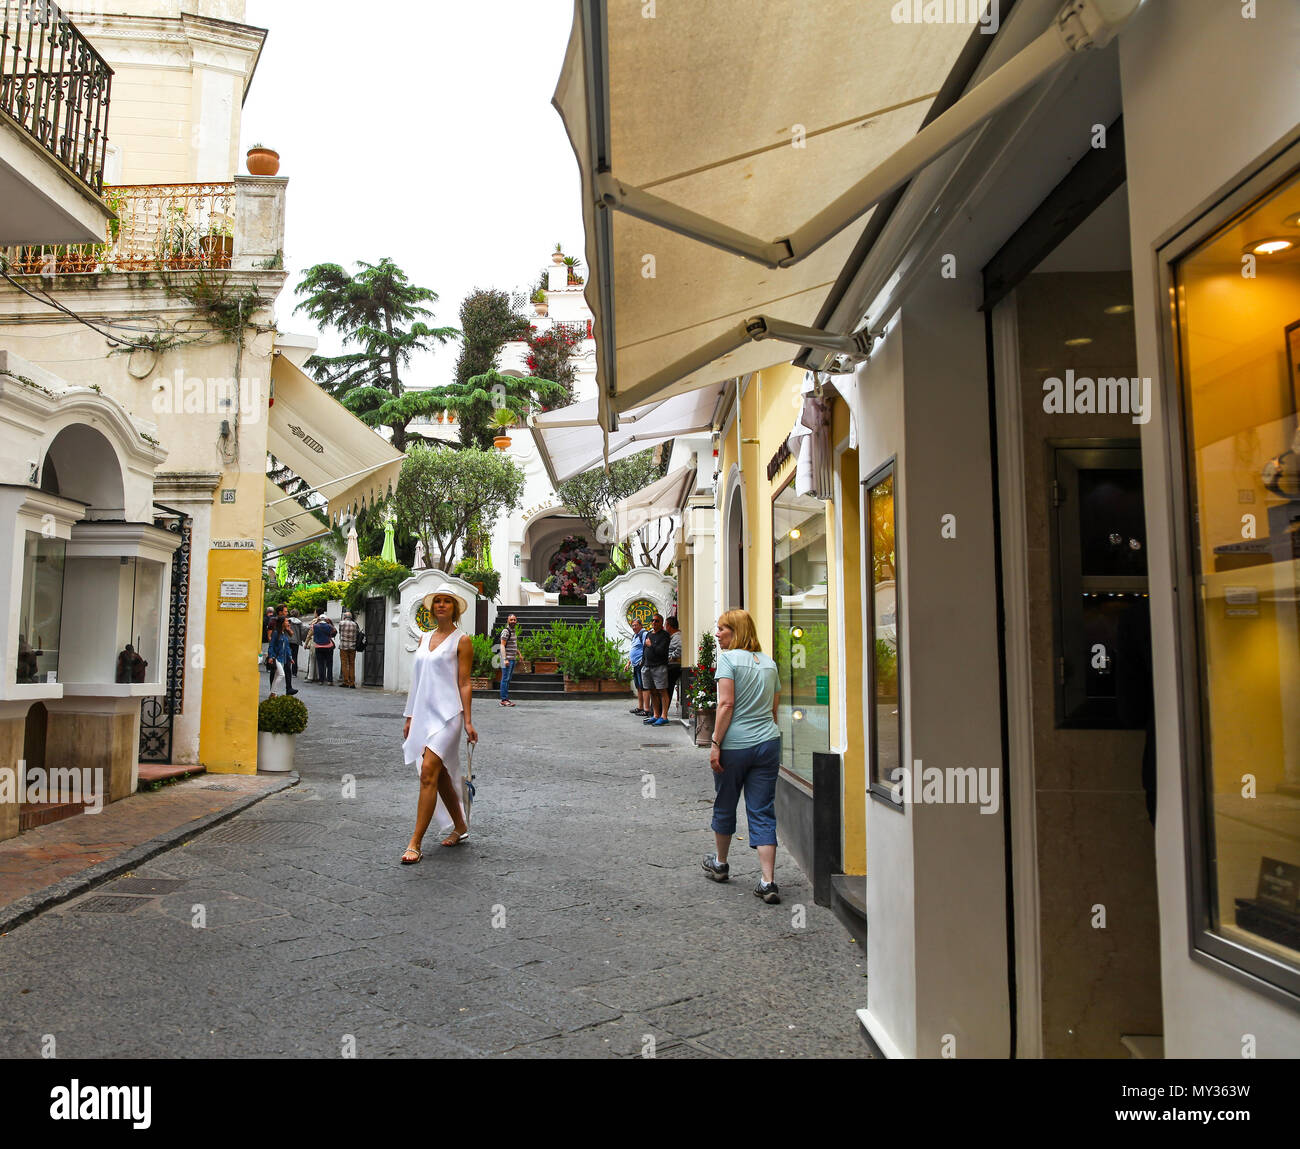 An elegant lady strolling the Via Camerelle, an expensive, up-market shopping street where they sell designer labels on the island of Capri, Italy - Stock Image